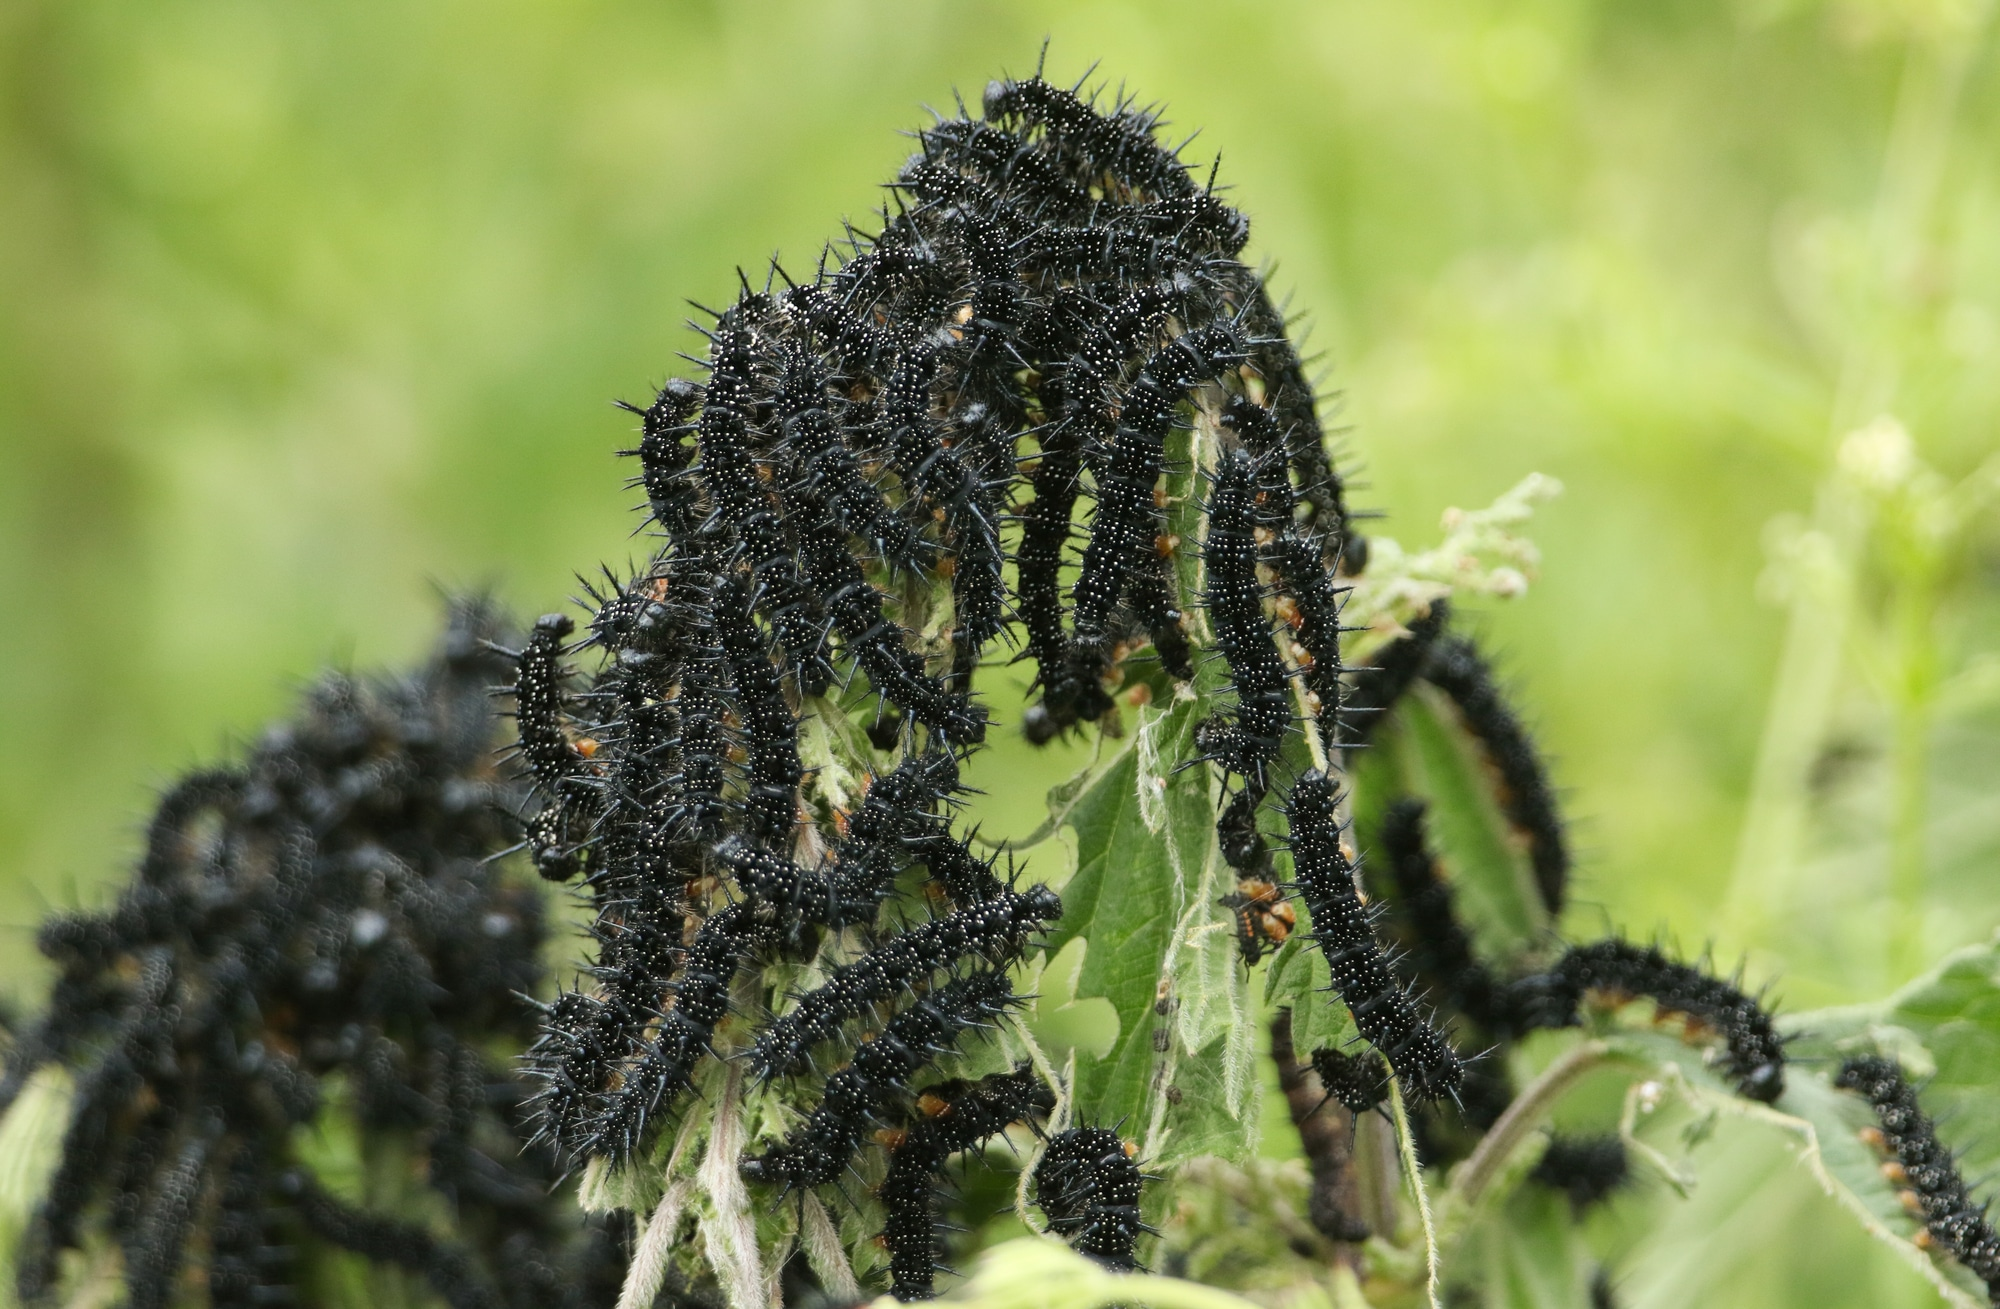 A number of Peacock Butterfly Caterpillars, Inachis io, feeding on a Stinging Nettle plant in a meadow.